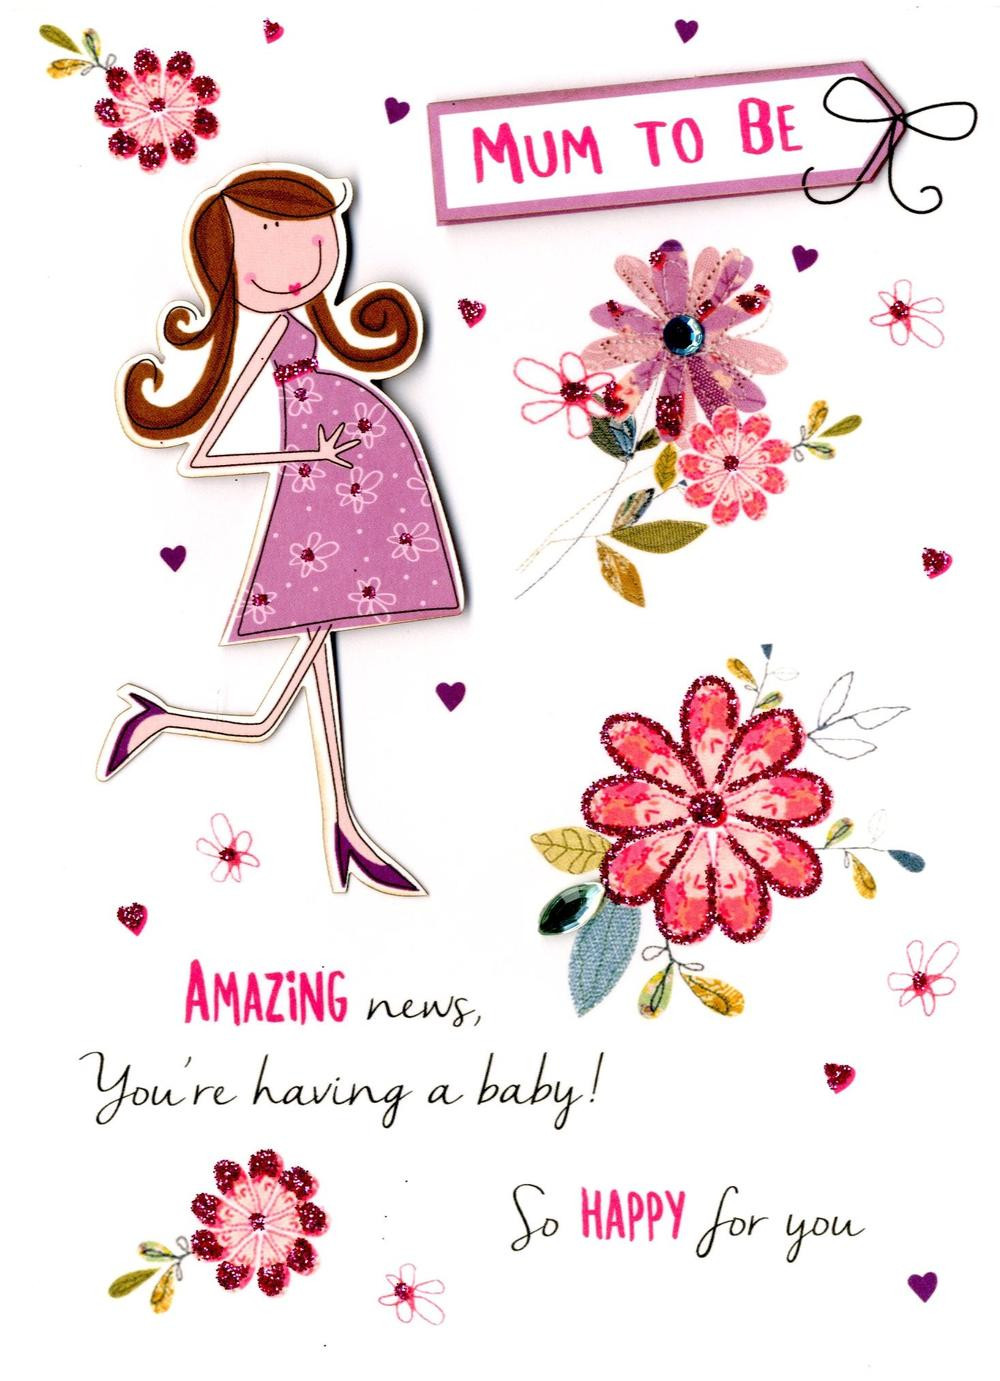 Expecting A Baby Gift  Mum To Be Expecting A Baby Greeting Card